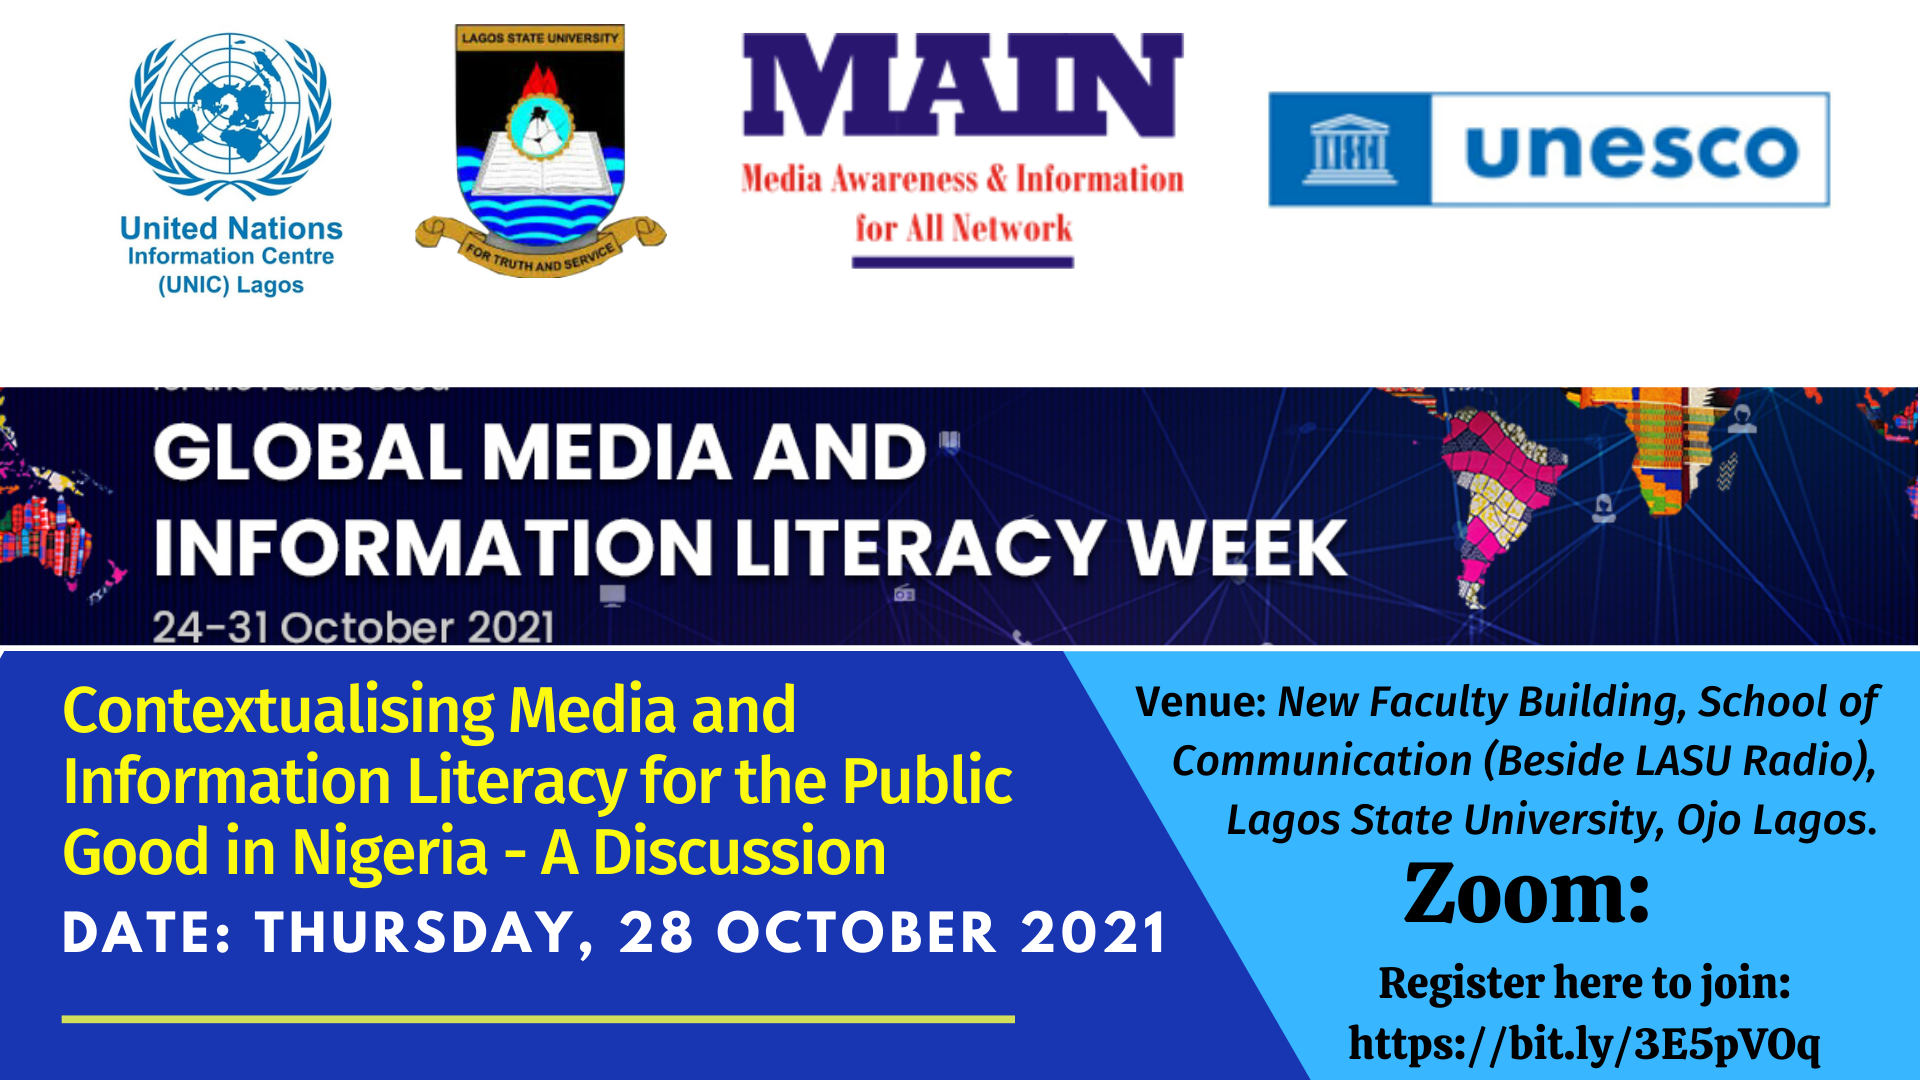 Register to join Media and Information Literacy Week event